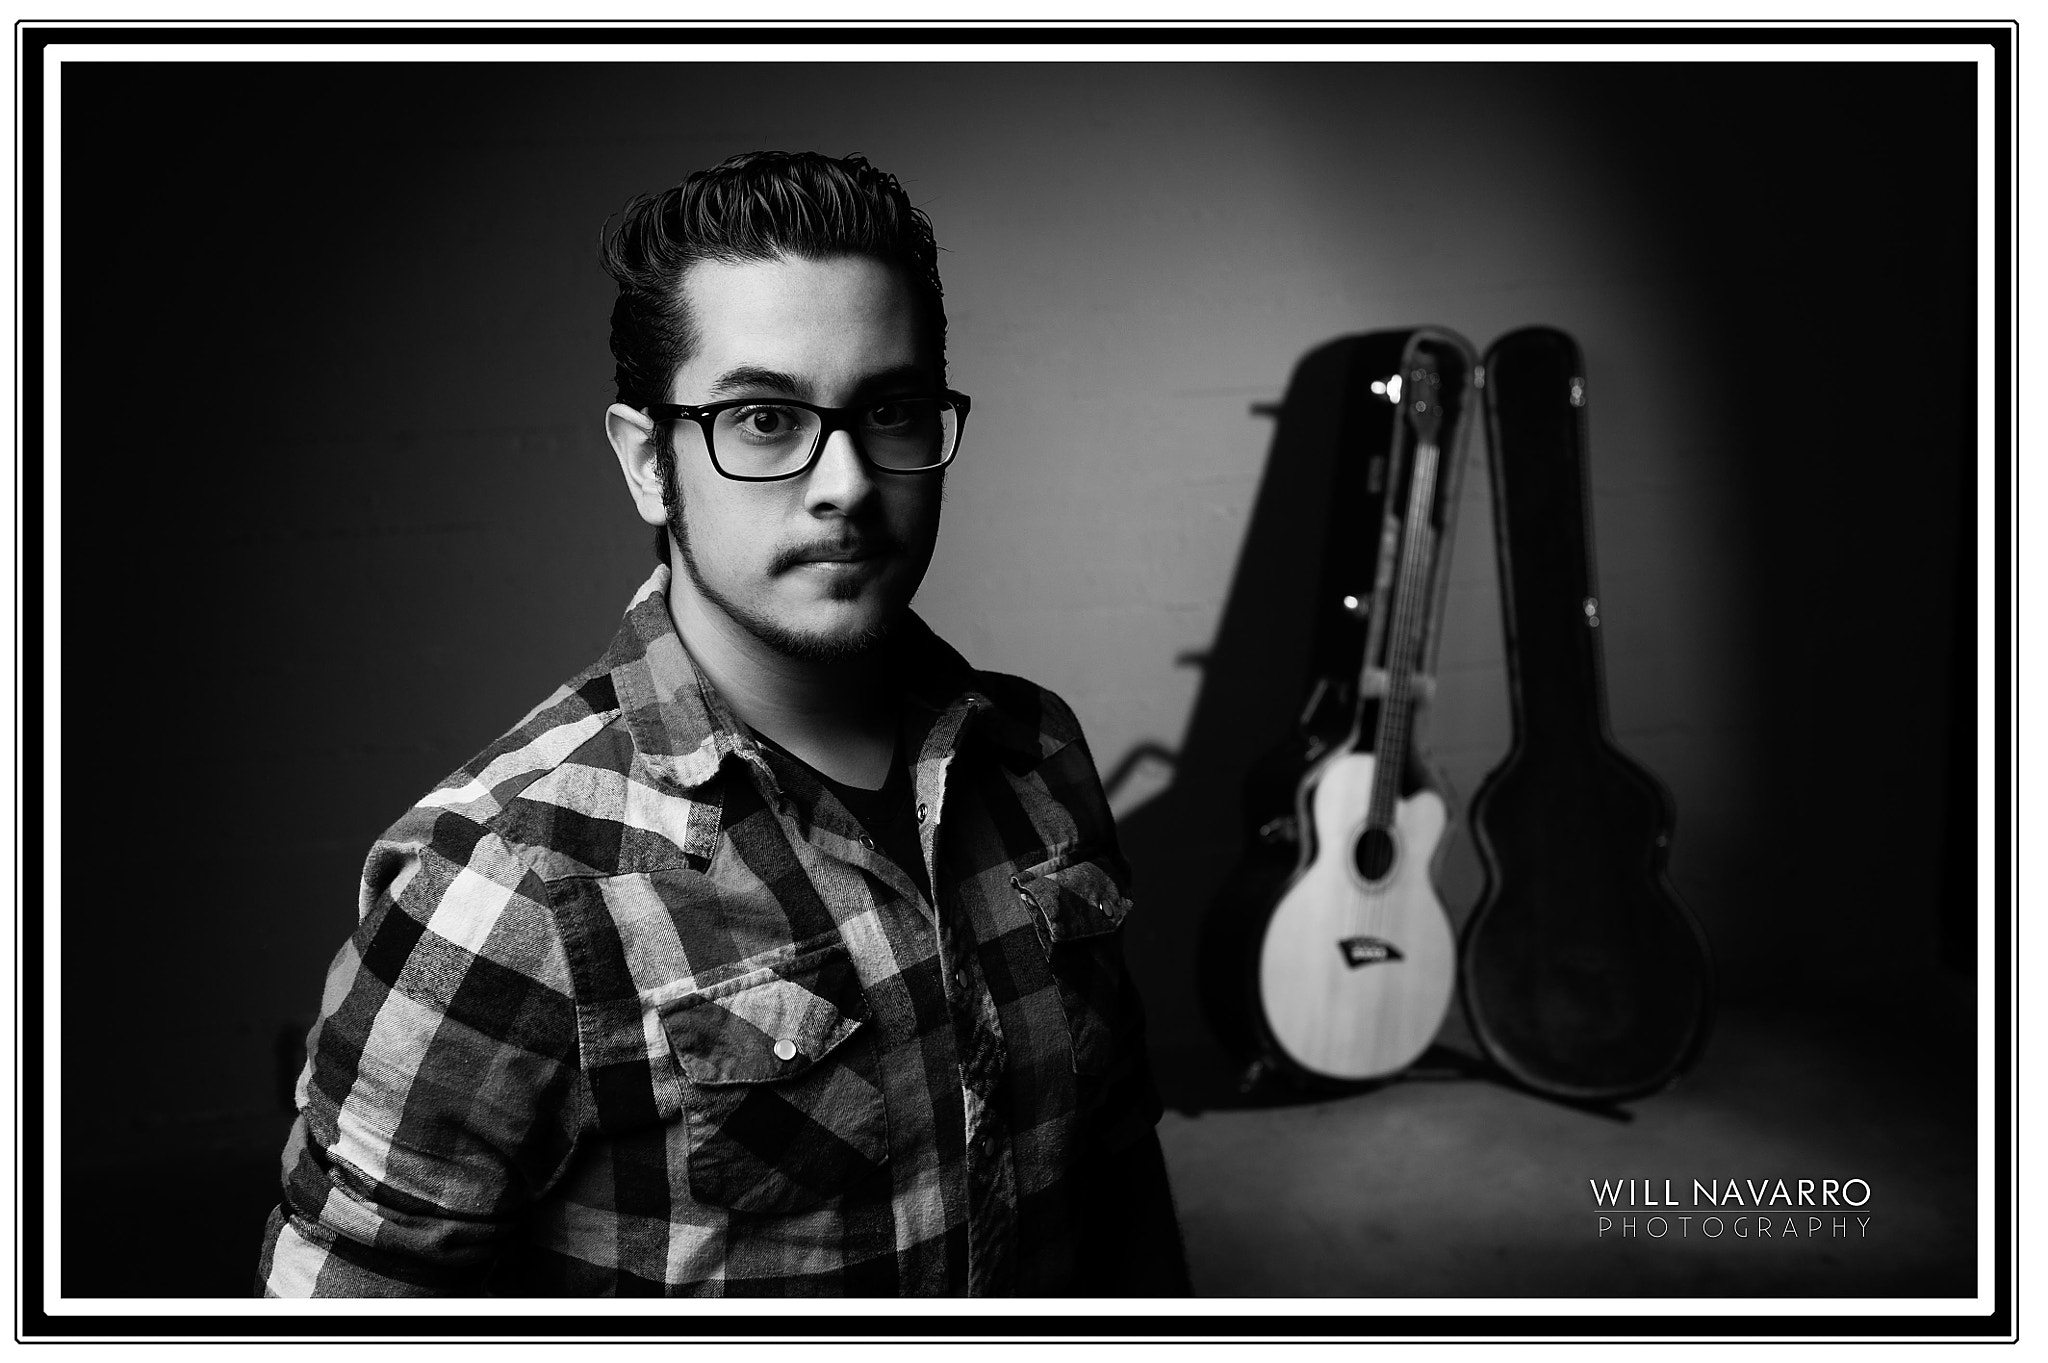 Photograph Studio Musician by Will Navarro | Photography on 500px